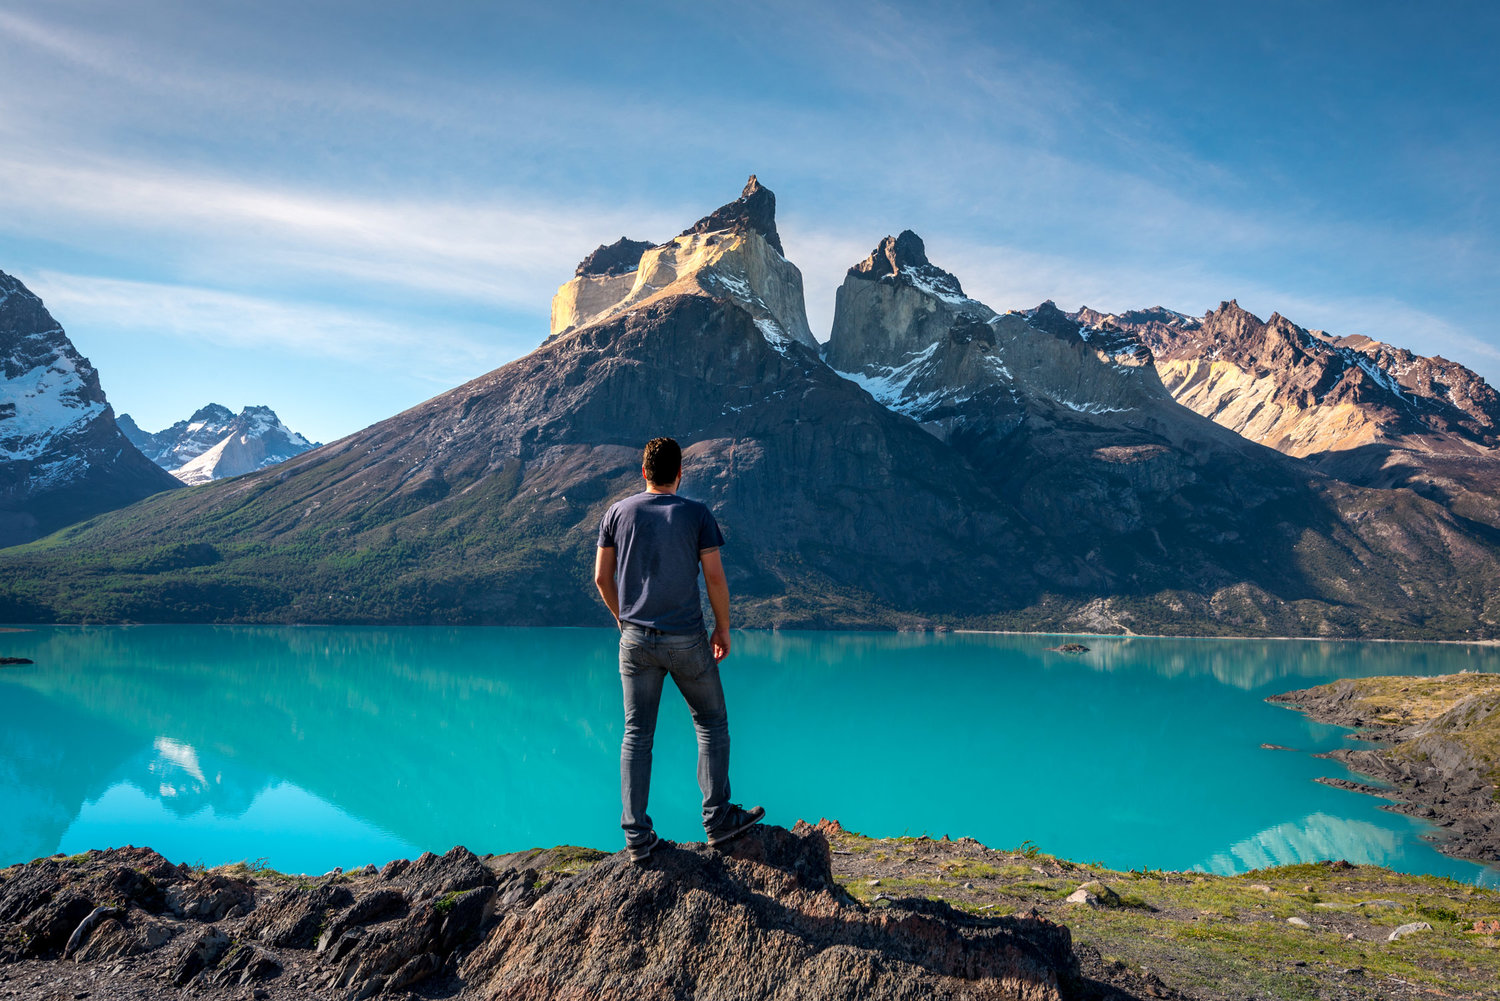 Trekking excursions with Hotel Tierra Patagonia, Chile